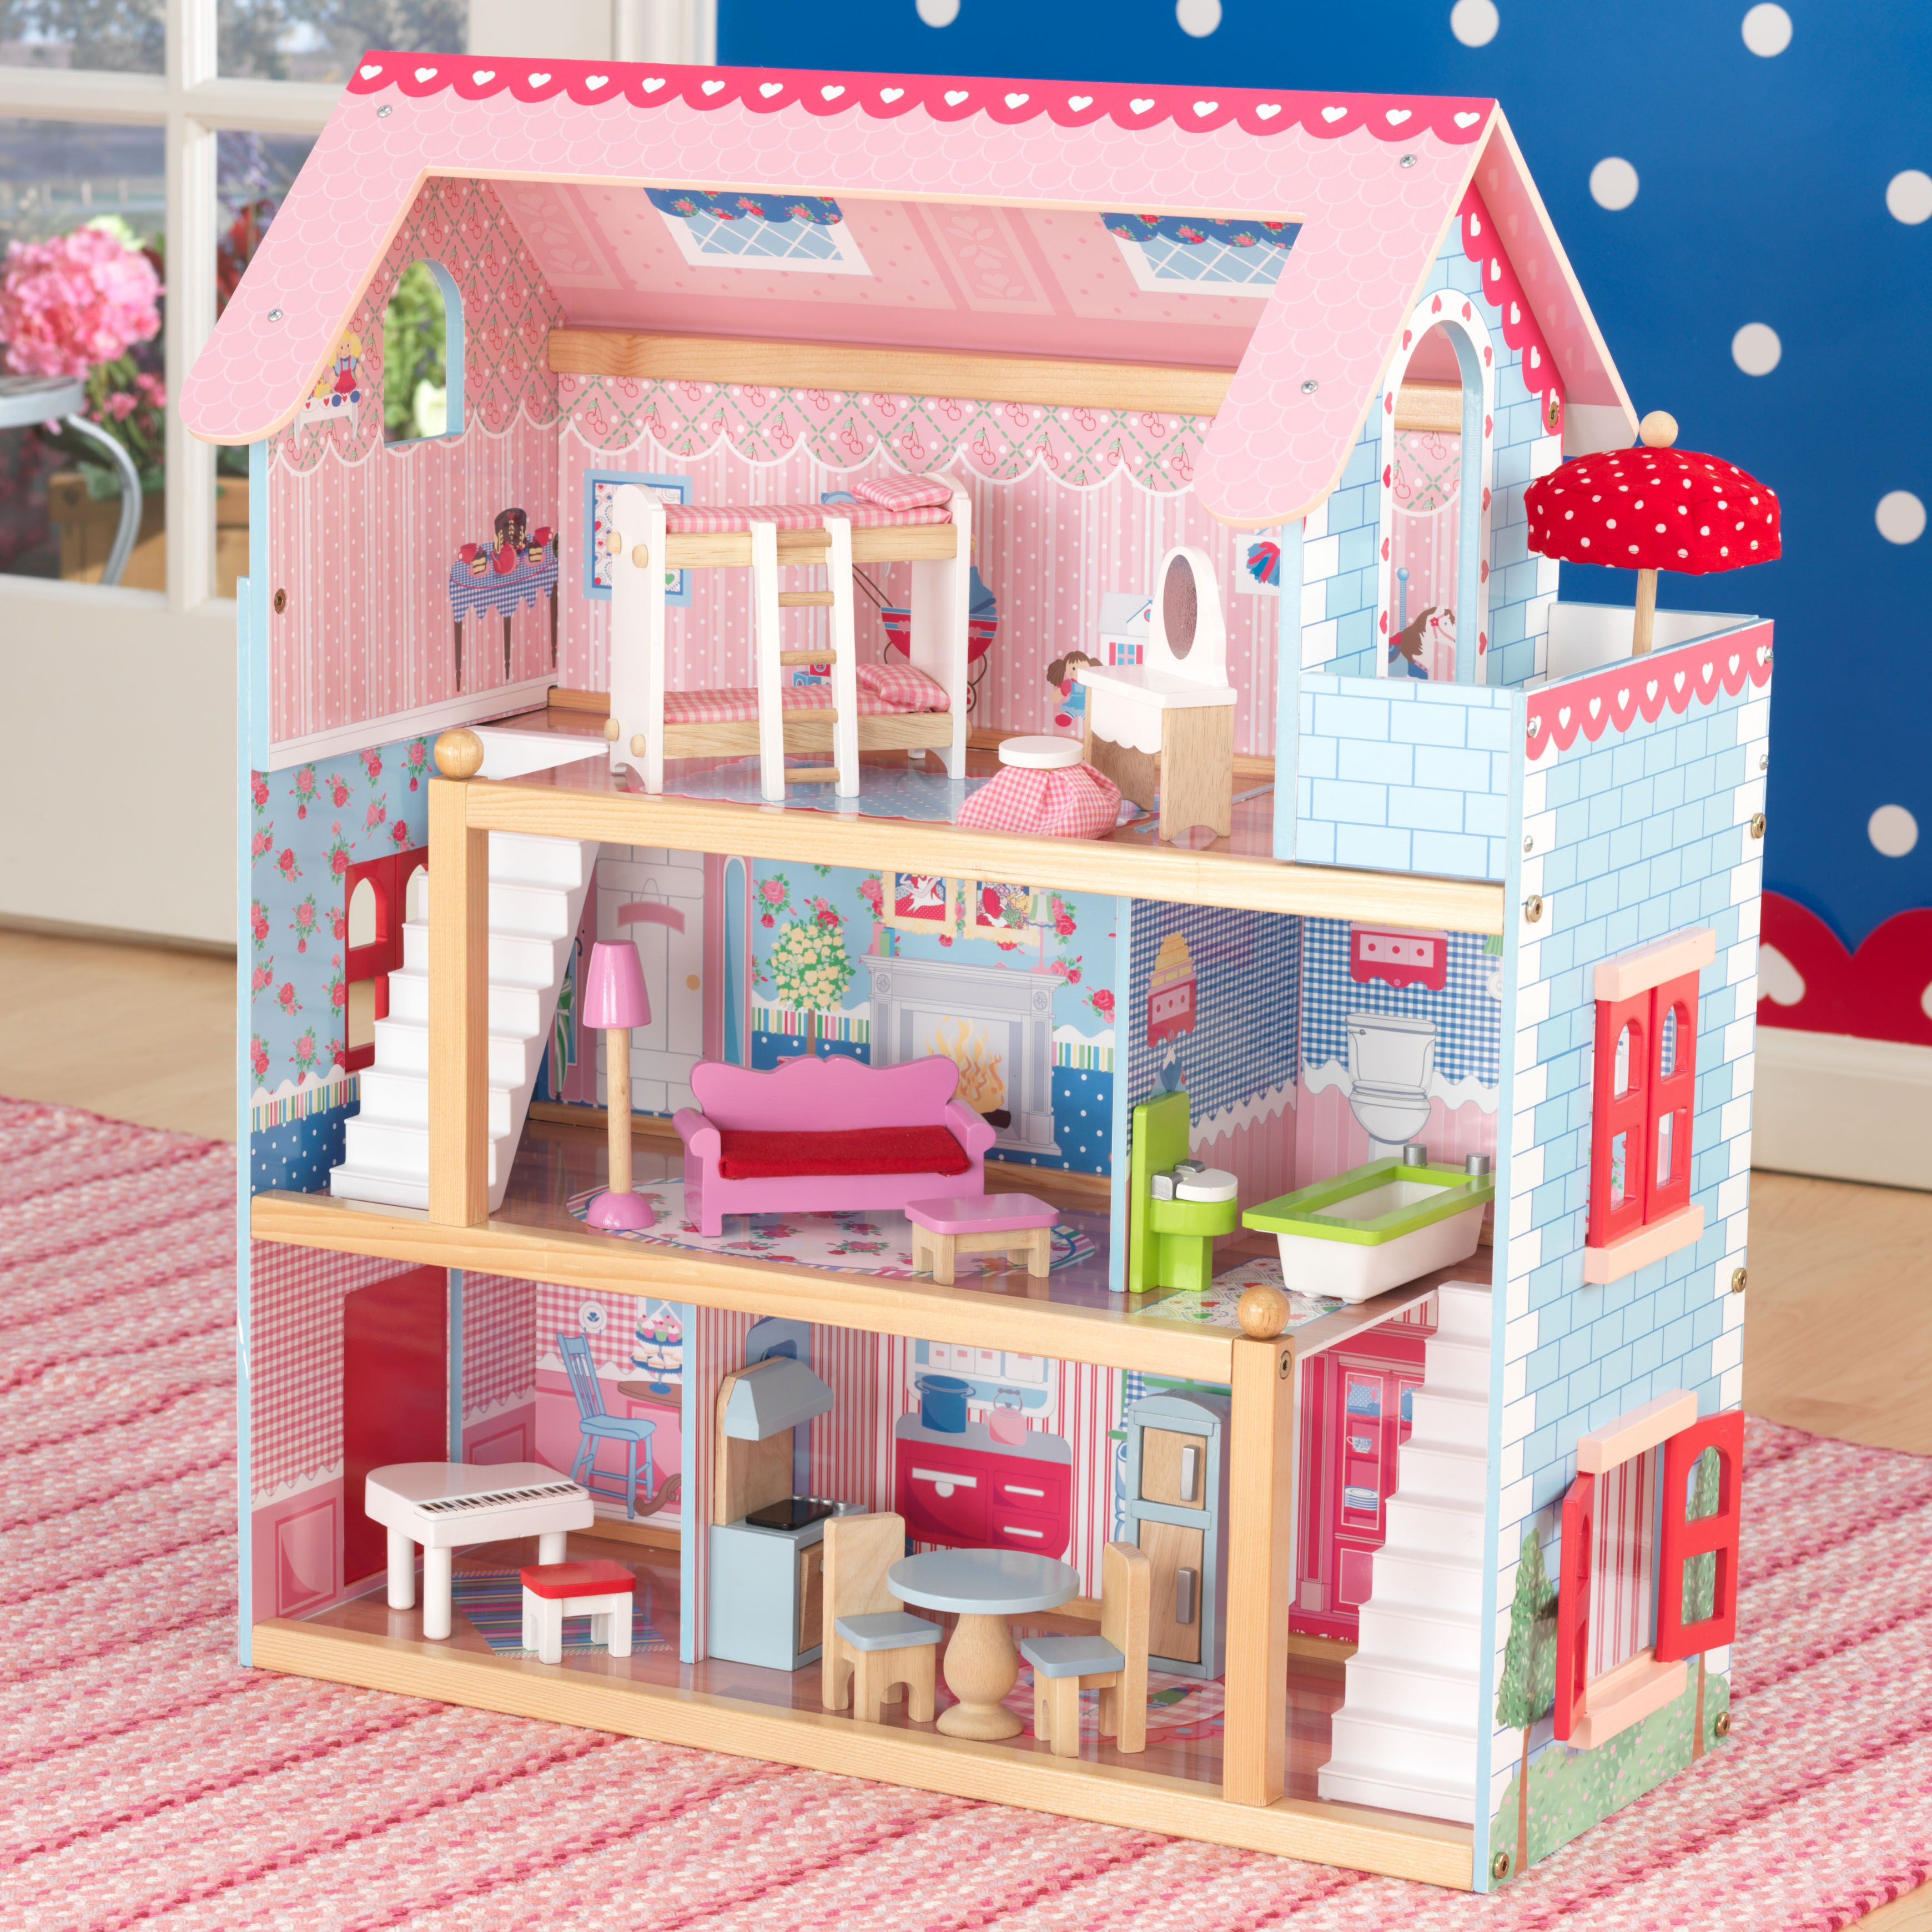 Our Chelsea Doll Cottage is filled with details young girls are